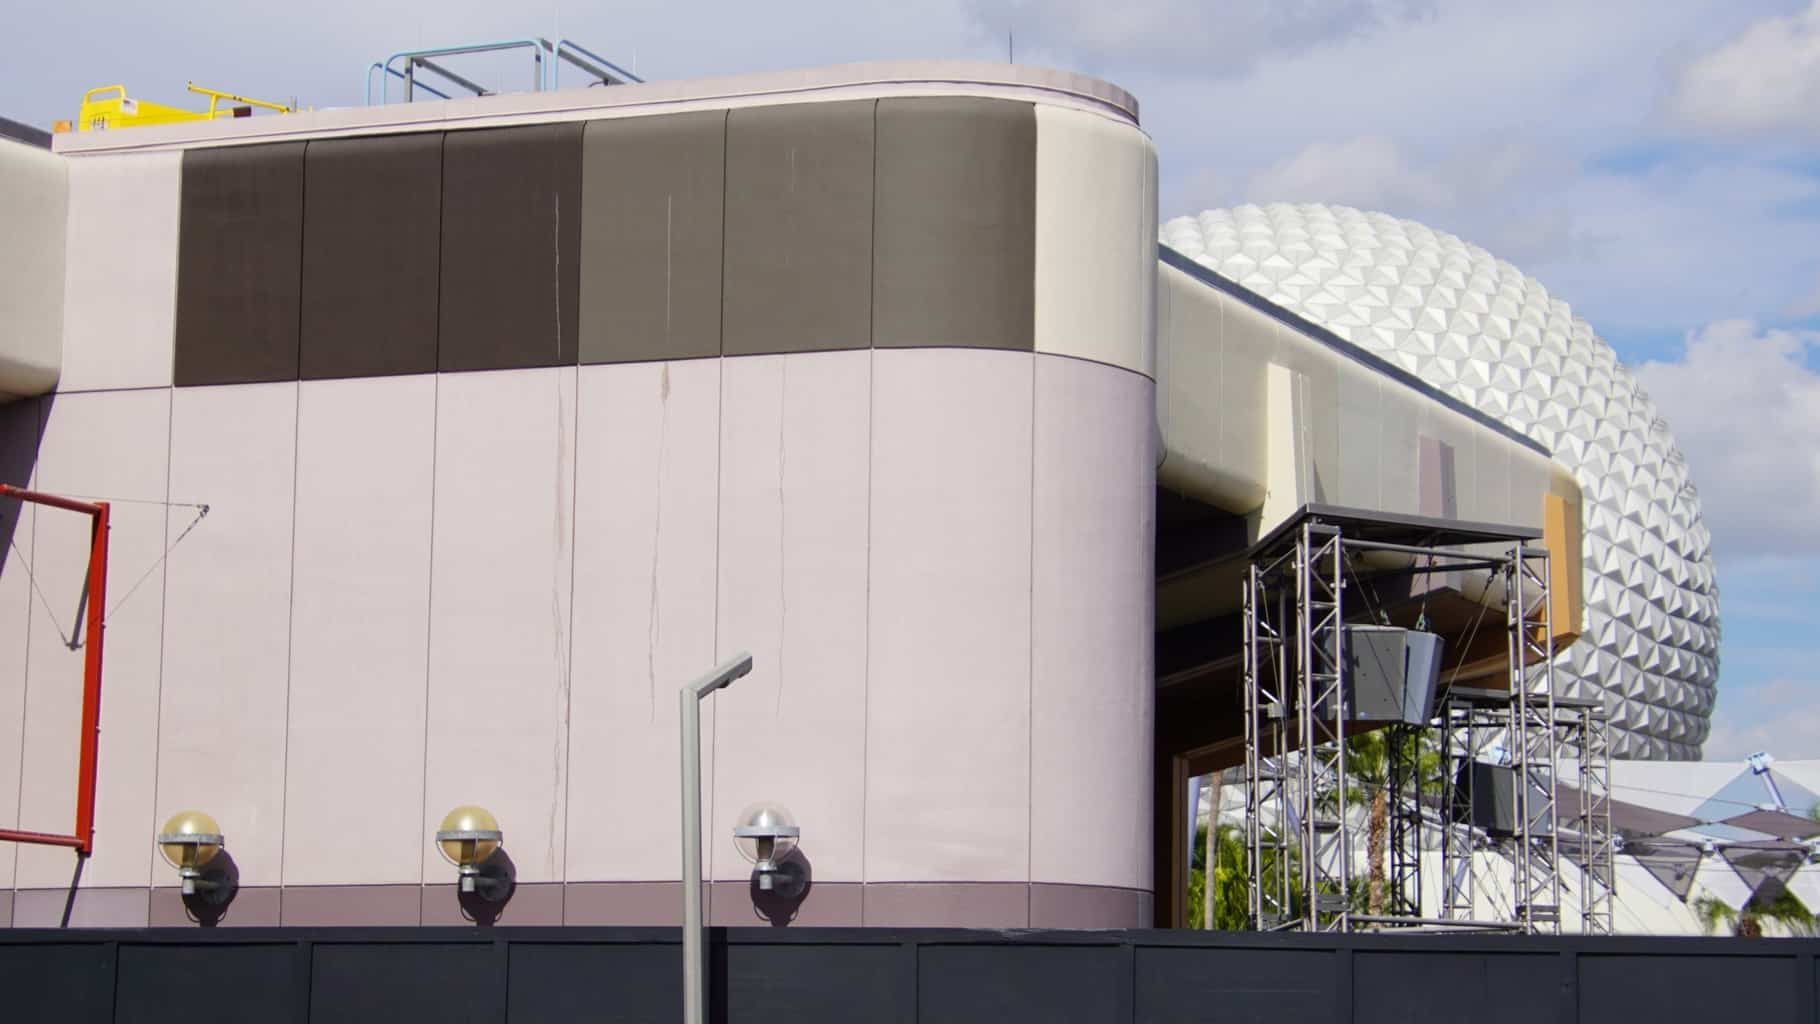 speakers down Innoventions West Epcot Construction Updates November 2019